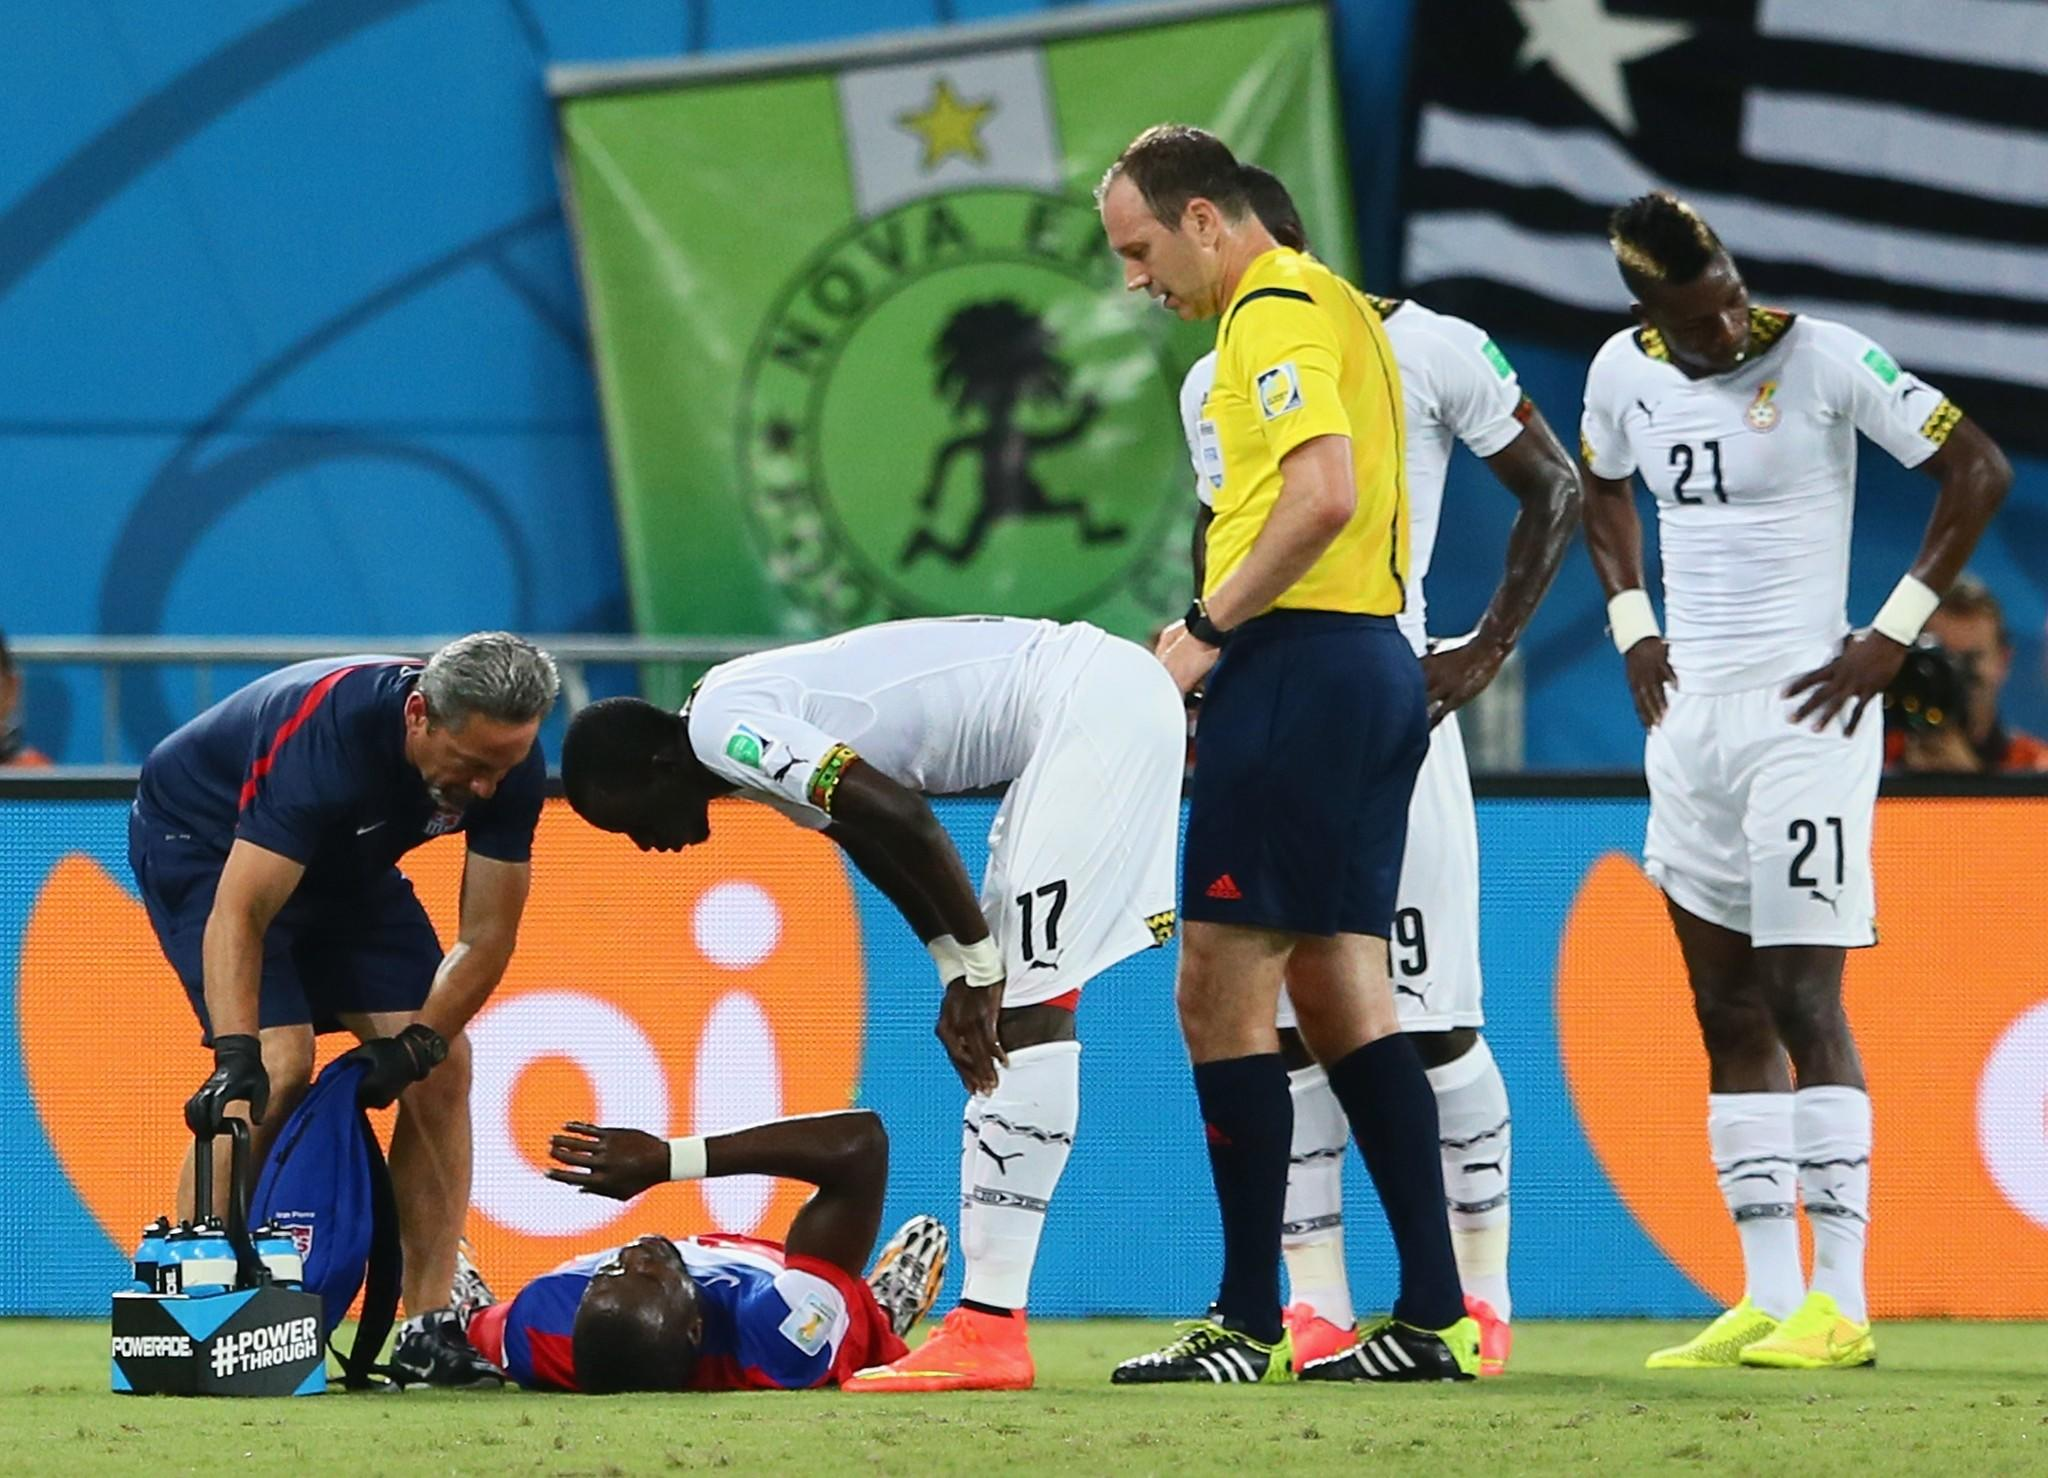 NATAL, BRAZIL - JUNE 16: An injured Jozy Altidore of the United States lies on the field as Mohammed Rabiu of Ghana stands over during the 2014 FIFA World Cup Brazil Group G match between Ghana and the United States at Estadio das Dunas on June 16, 2014 in Natal, Brazil. (Photo by Kevin C. Cox/Getty Images) ORG XMIT: 491717955